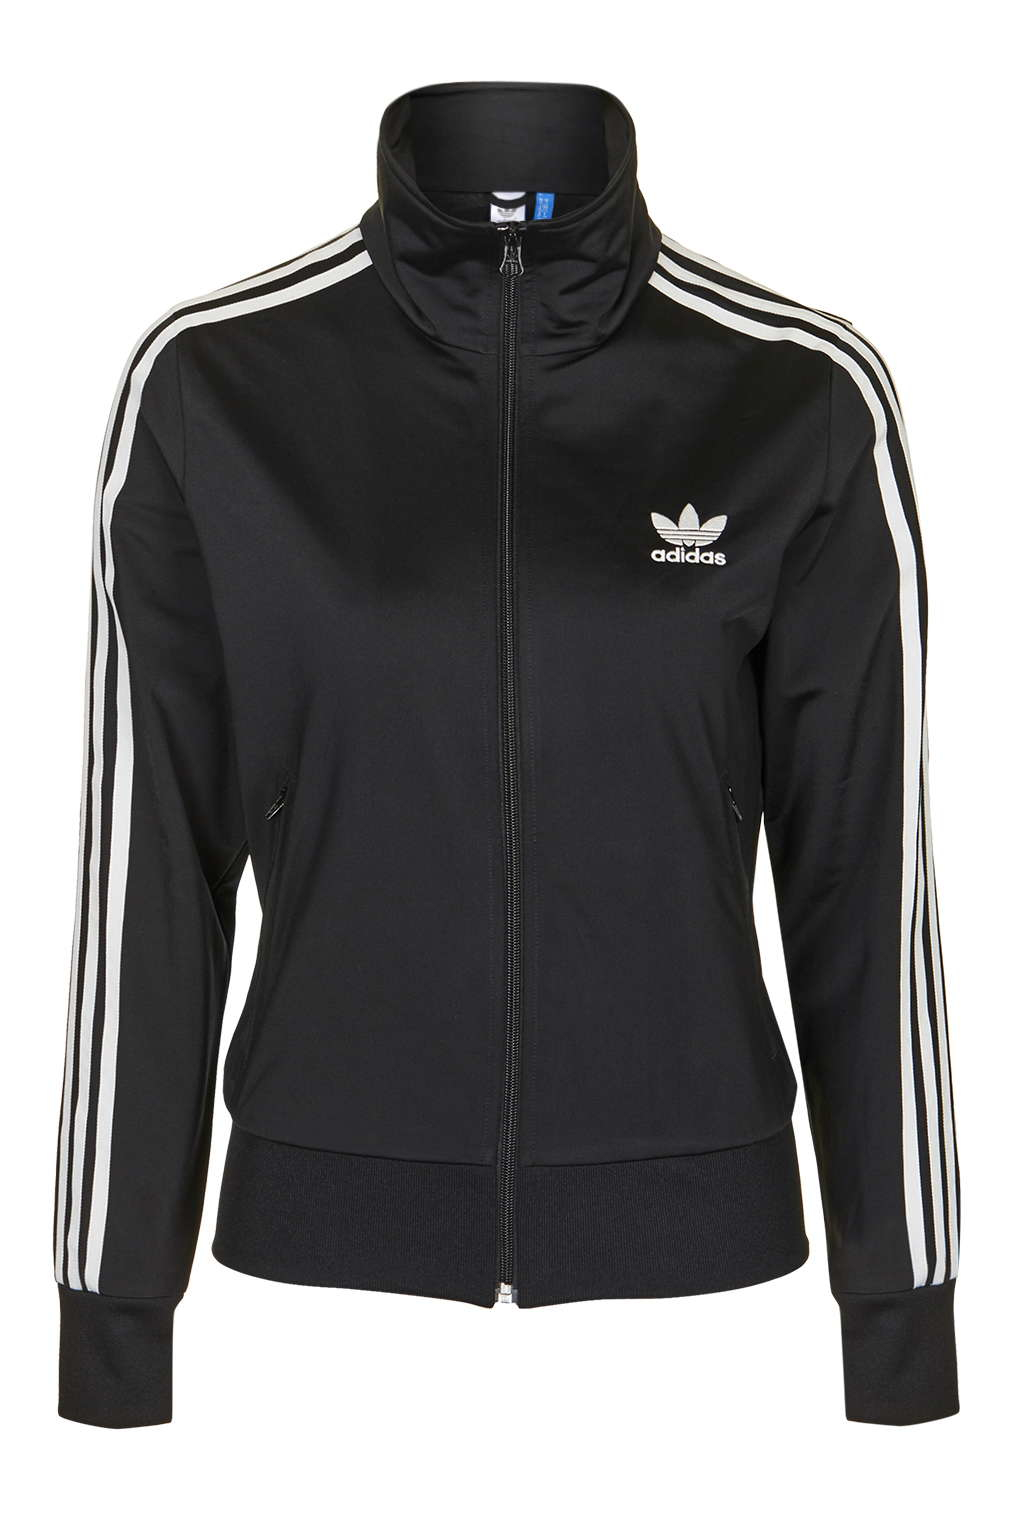 lyst topshop firebird track top jacket by adidas. Black Bedroom Furniture Sets. Home Design Ideas